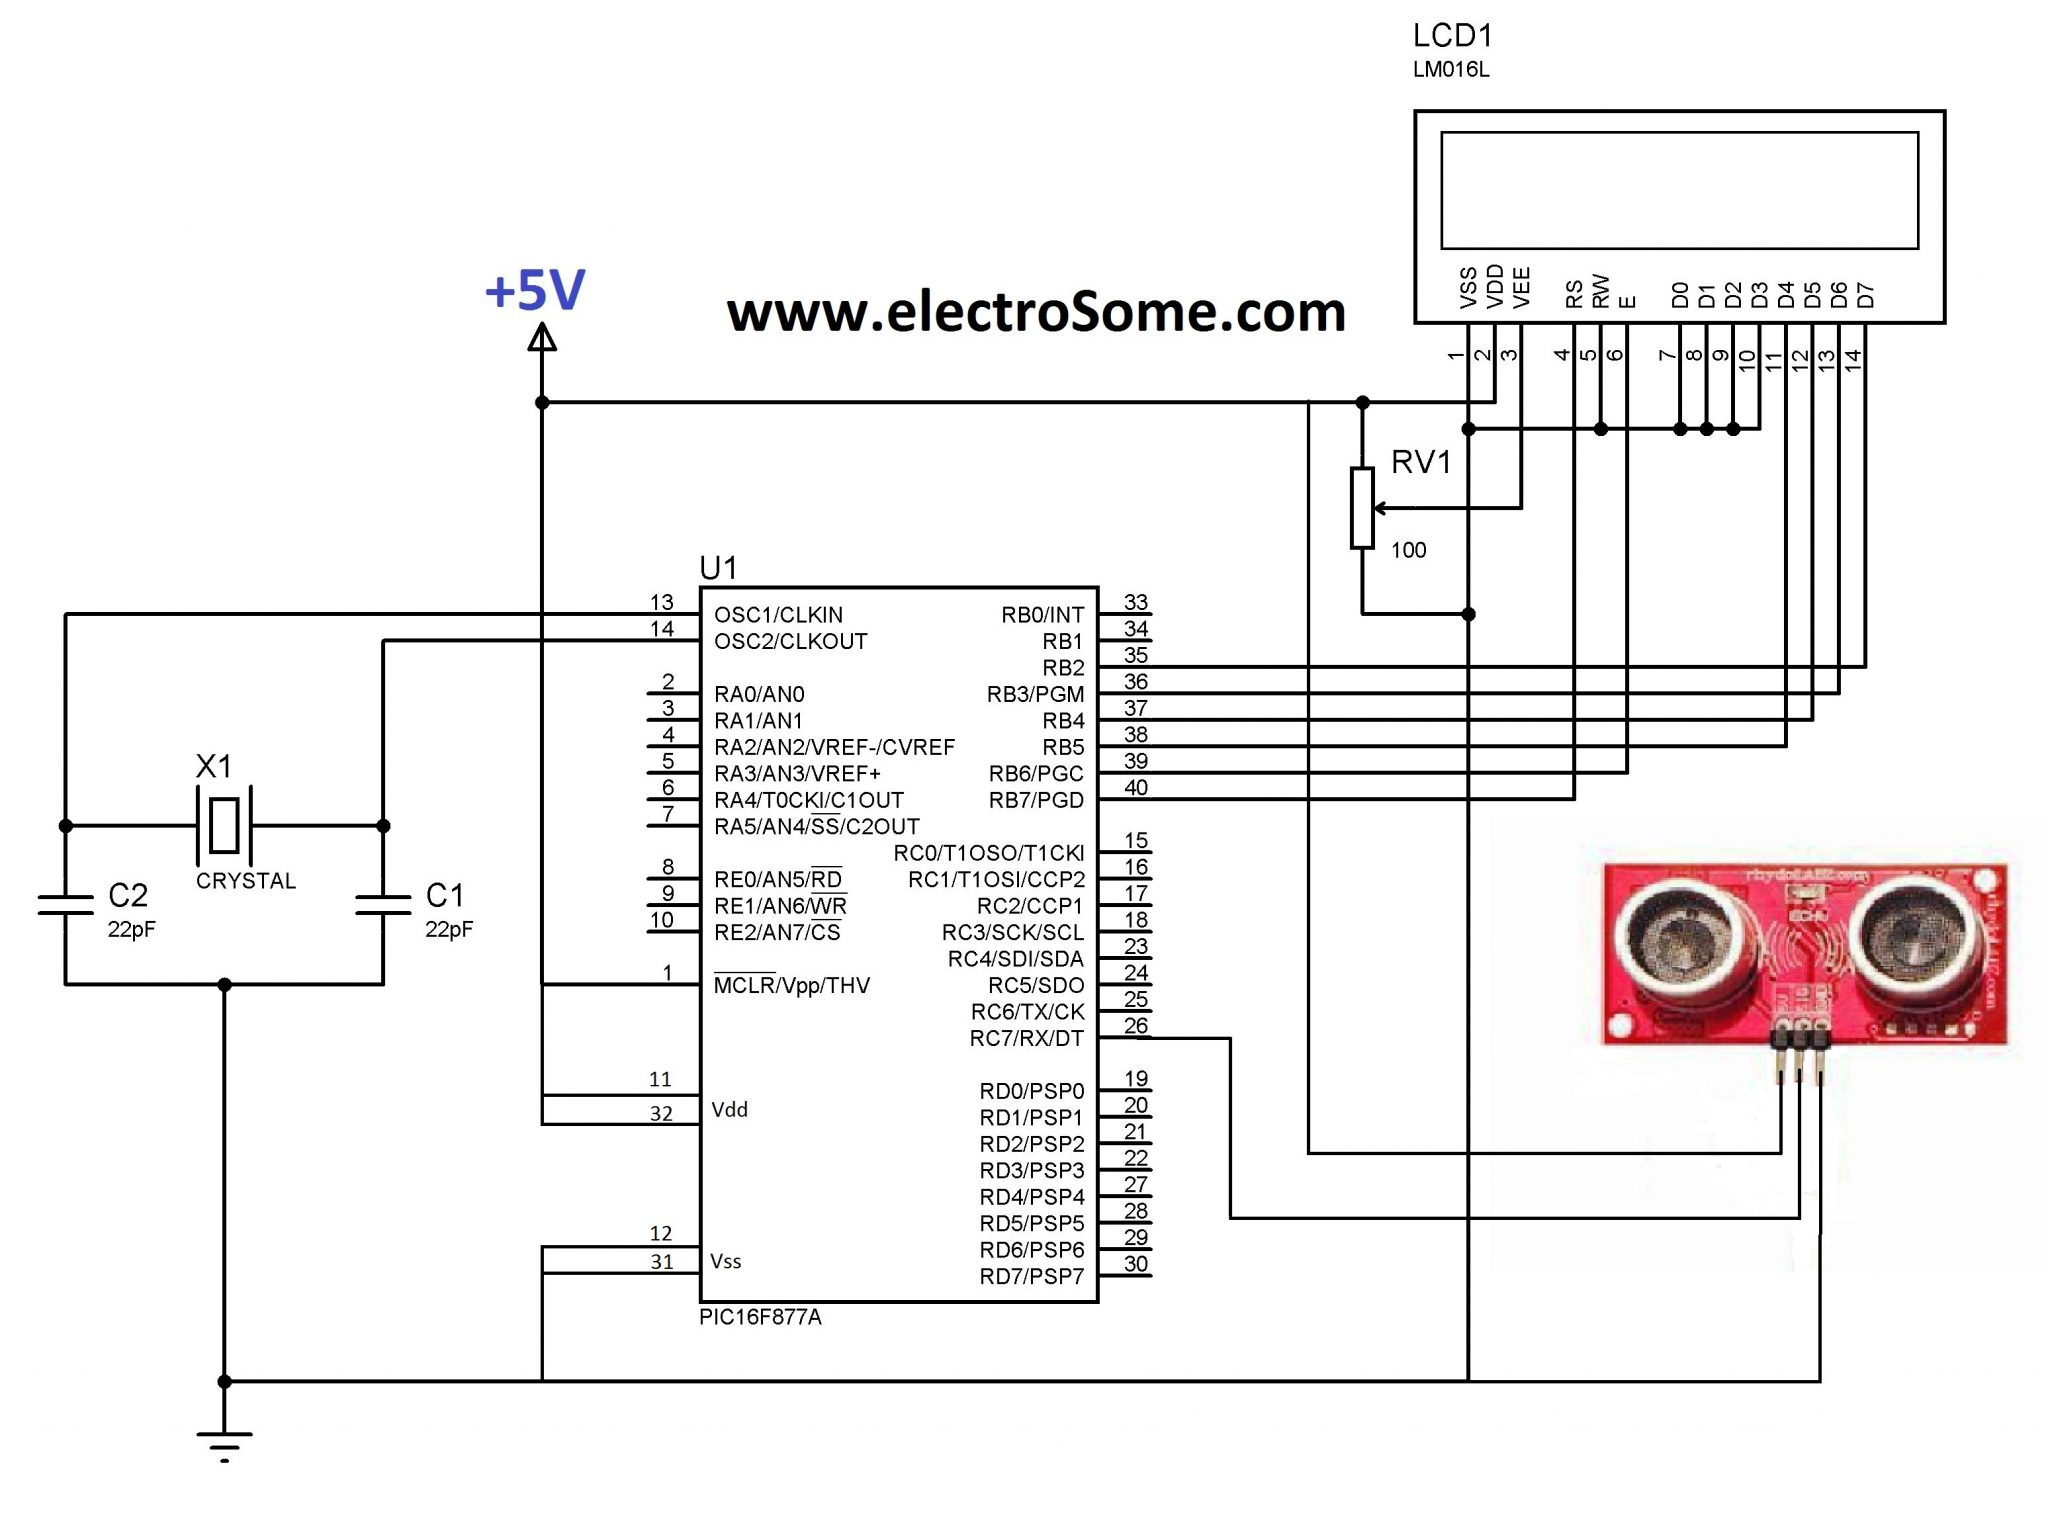 Ultrasonic Proximity Sensor Circuit Diagram Auto Electrical Wiring Repo Projects P Proximitysensorwithultrasonic Images Circuitpng